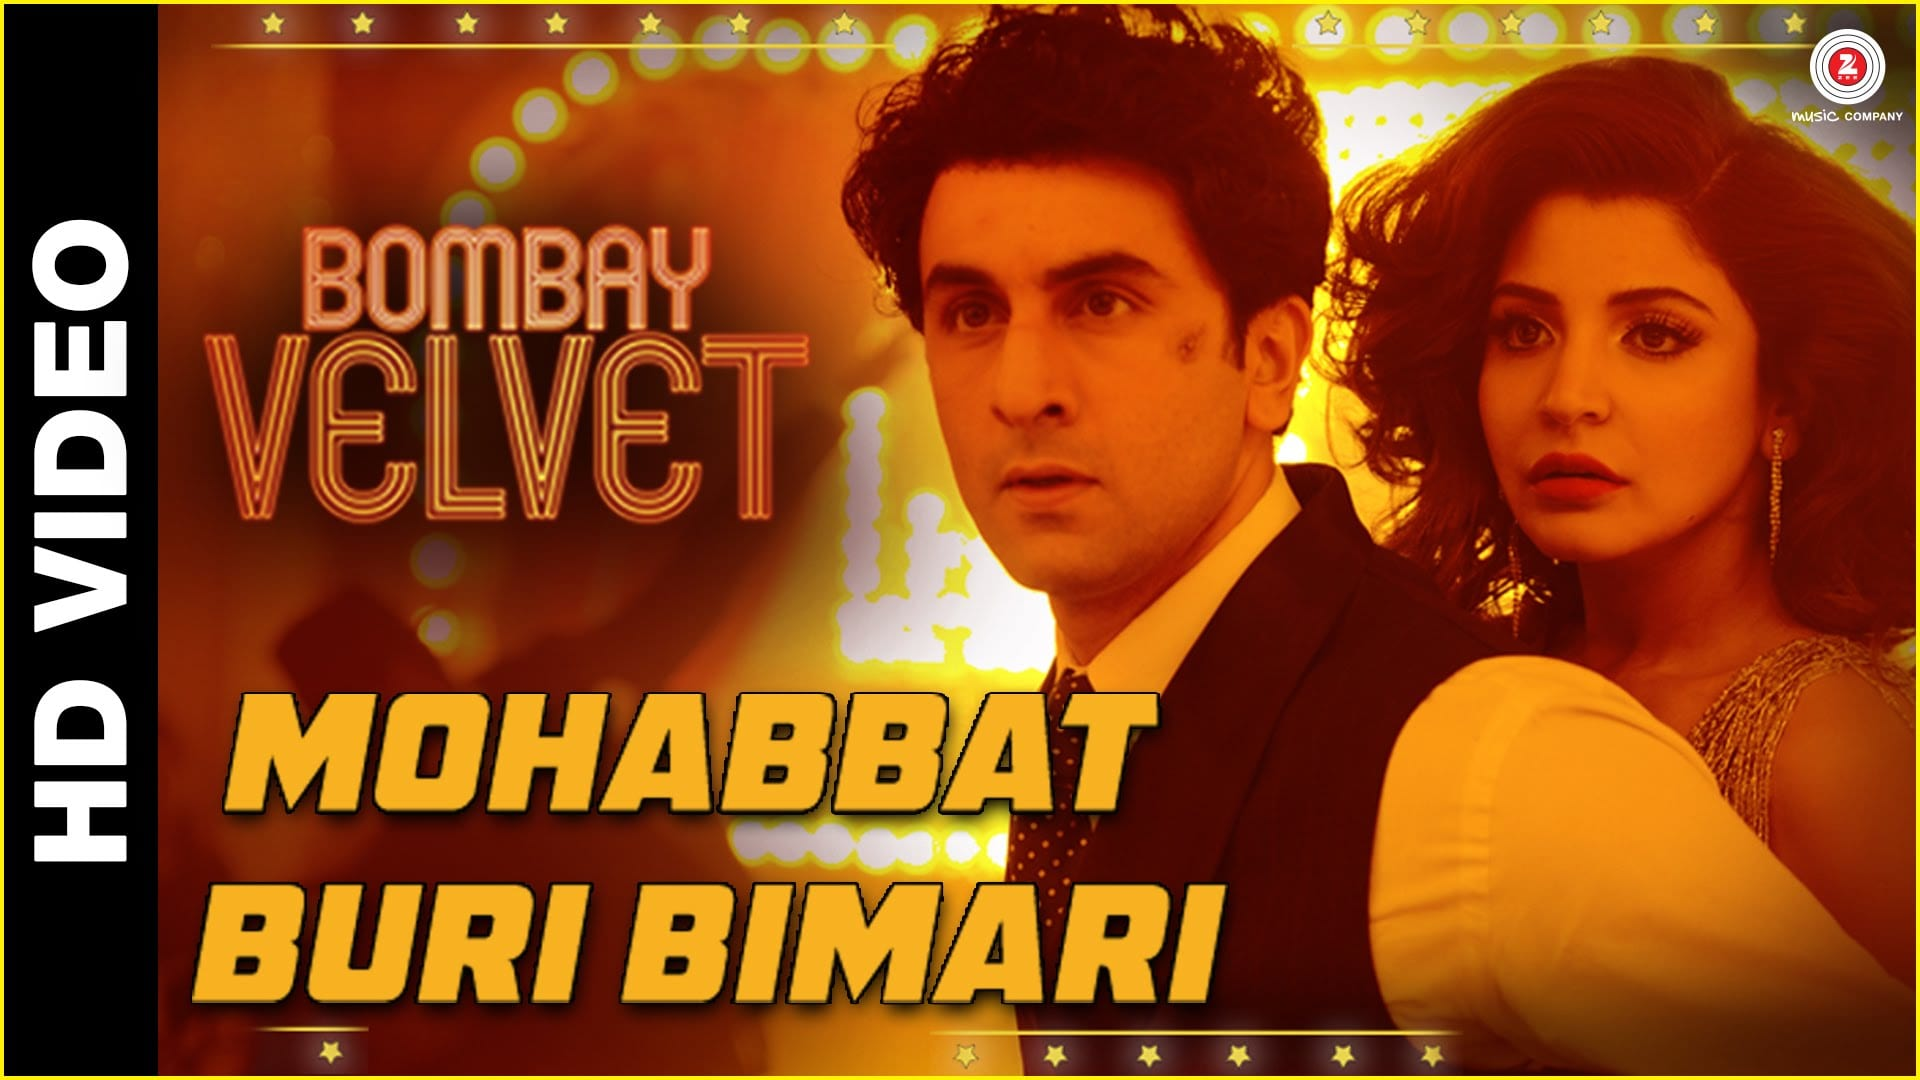 Mohabbat Buri Bimari Video Song – Bombay Velvet | Official Video Song